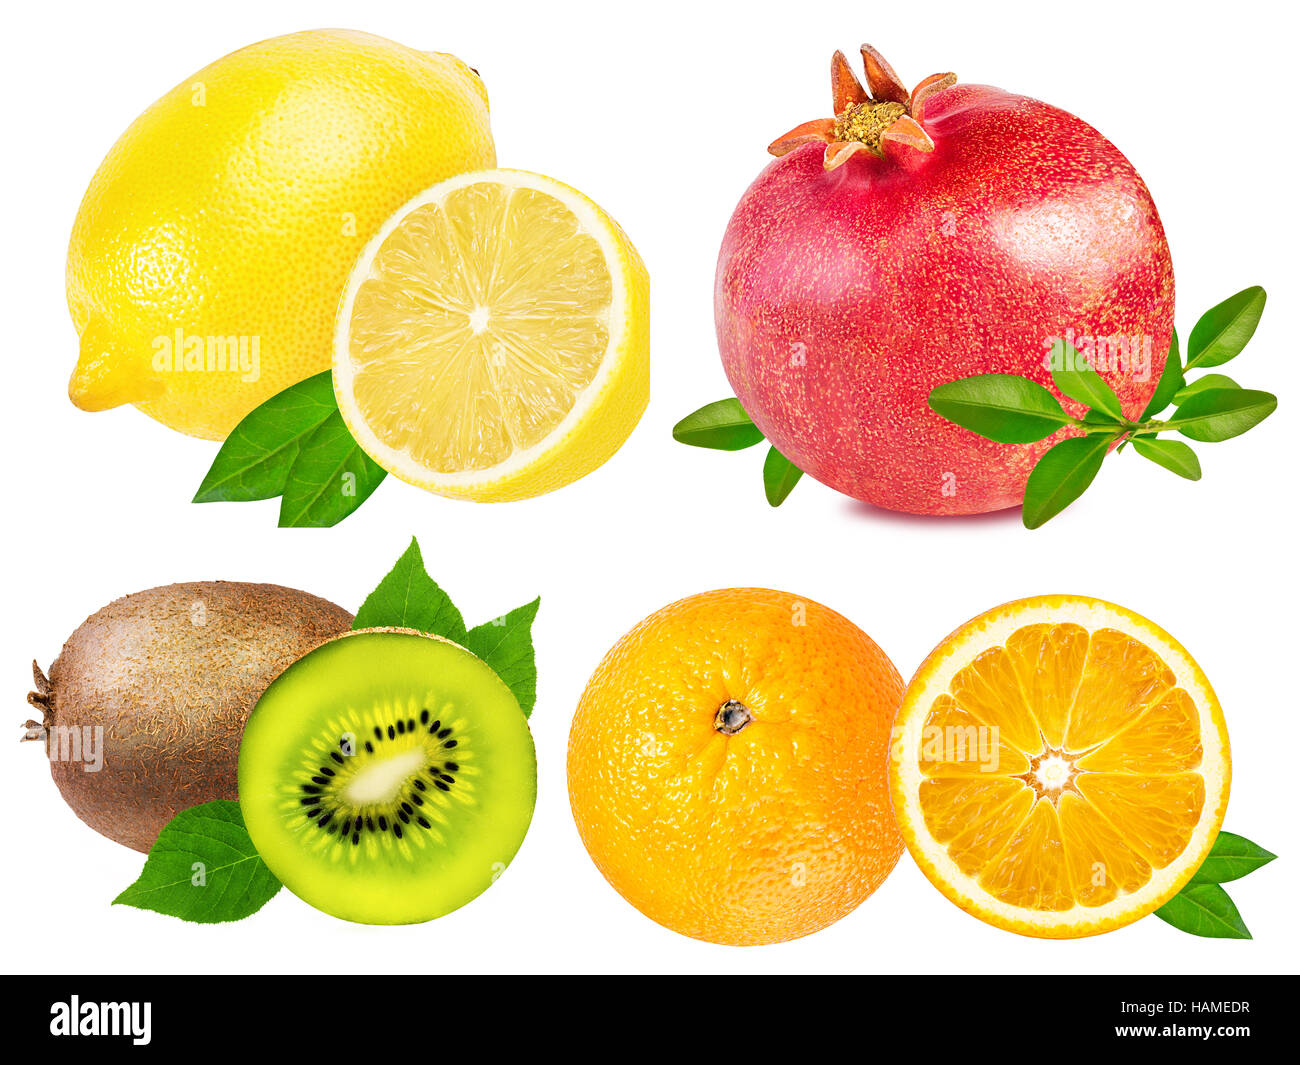 Collection of fruits isolated on white background - Stock Image